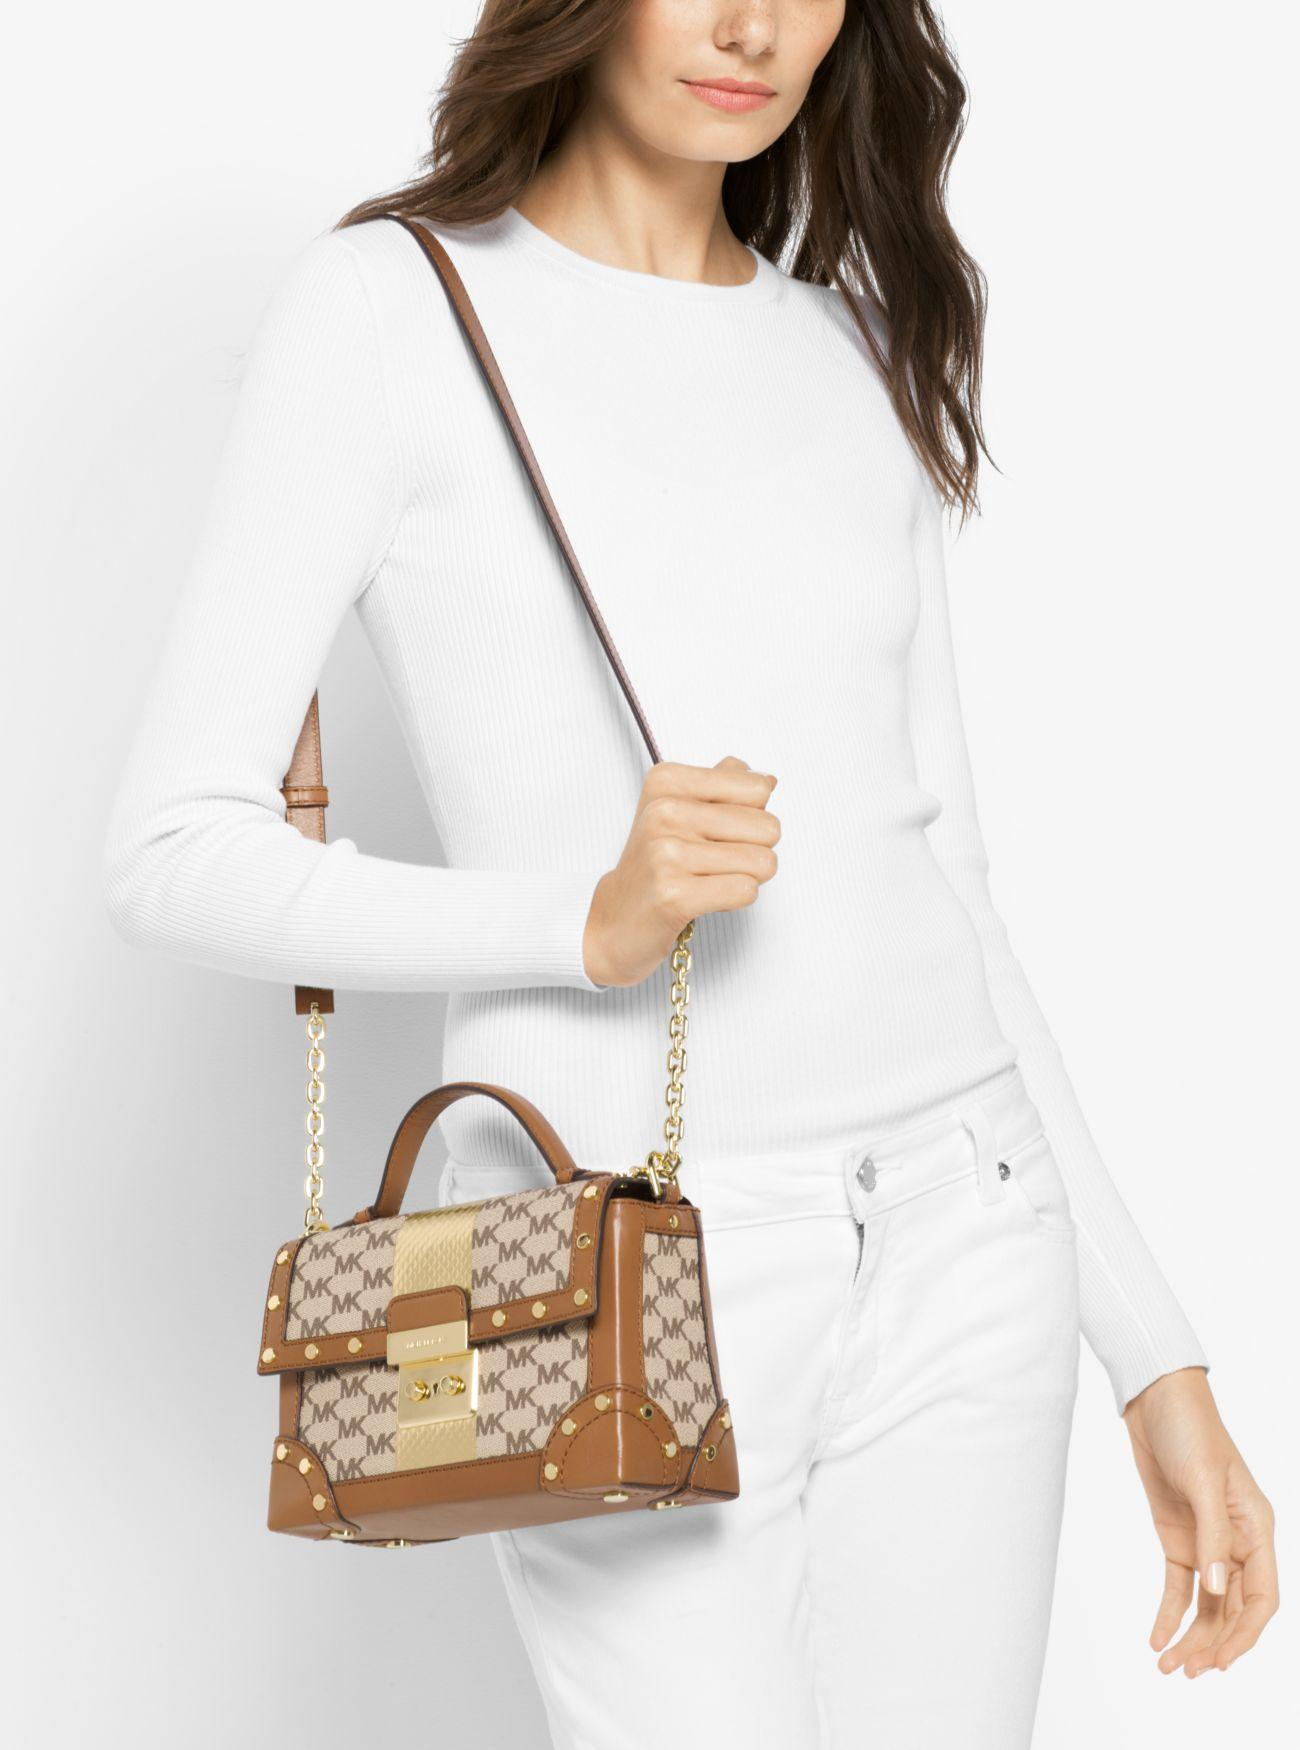 834653a65e1b Lyst - Michael Kors Cori Small Heritage Signature Trunk Bag in Natural